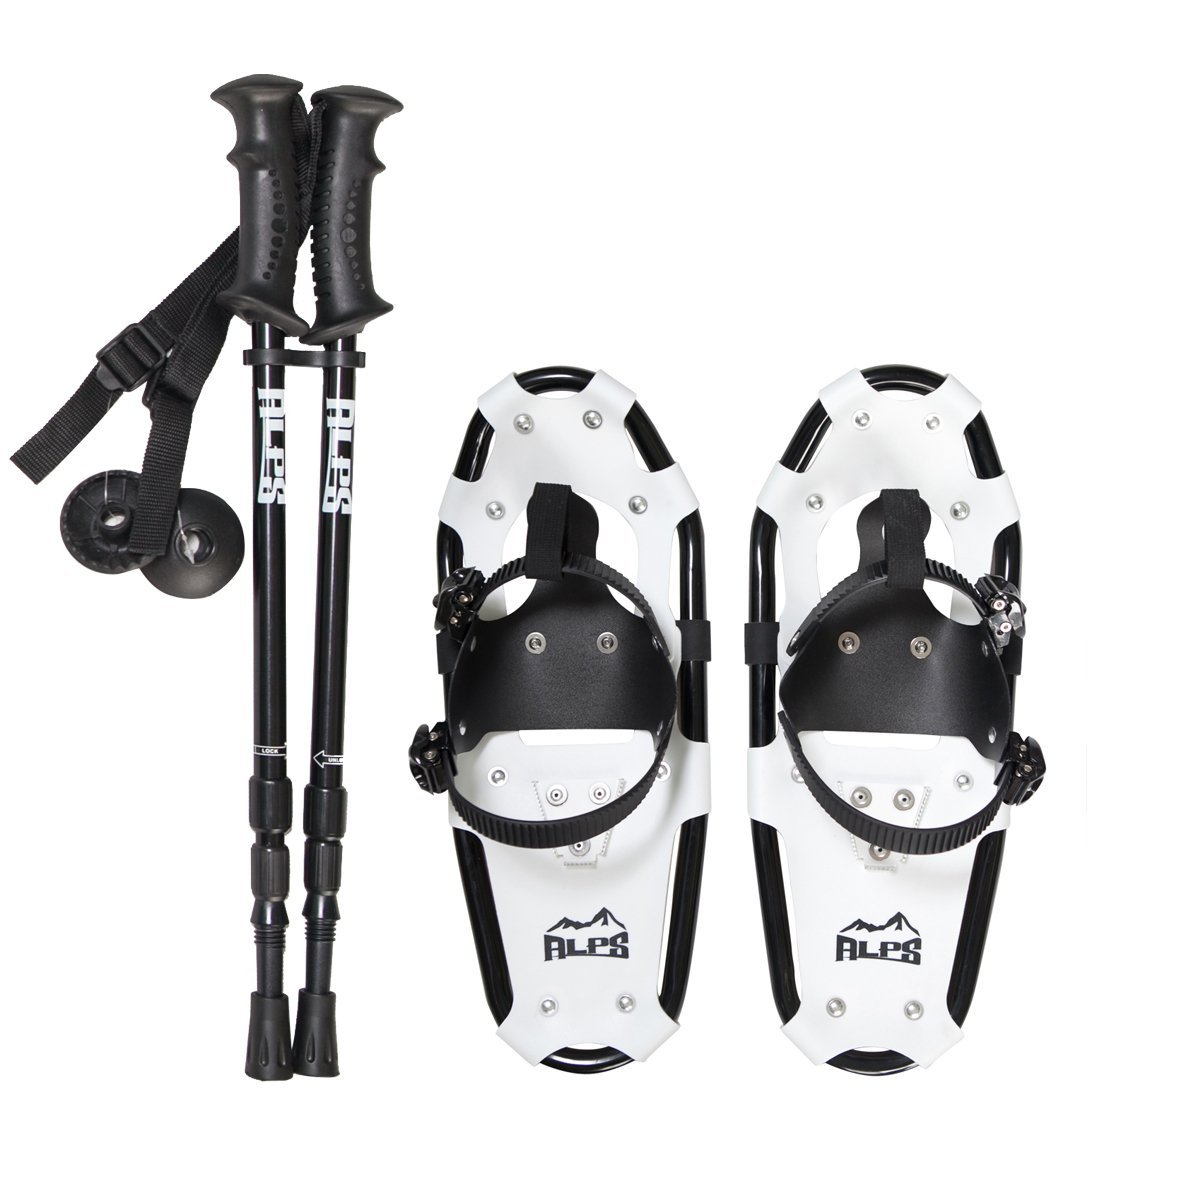 ALPS Snowshoes with Snow Pole and Carrying Tote by